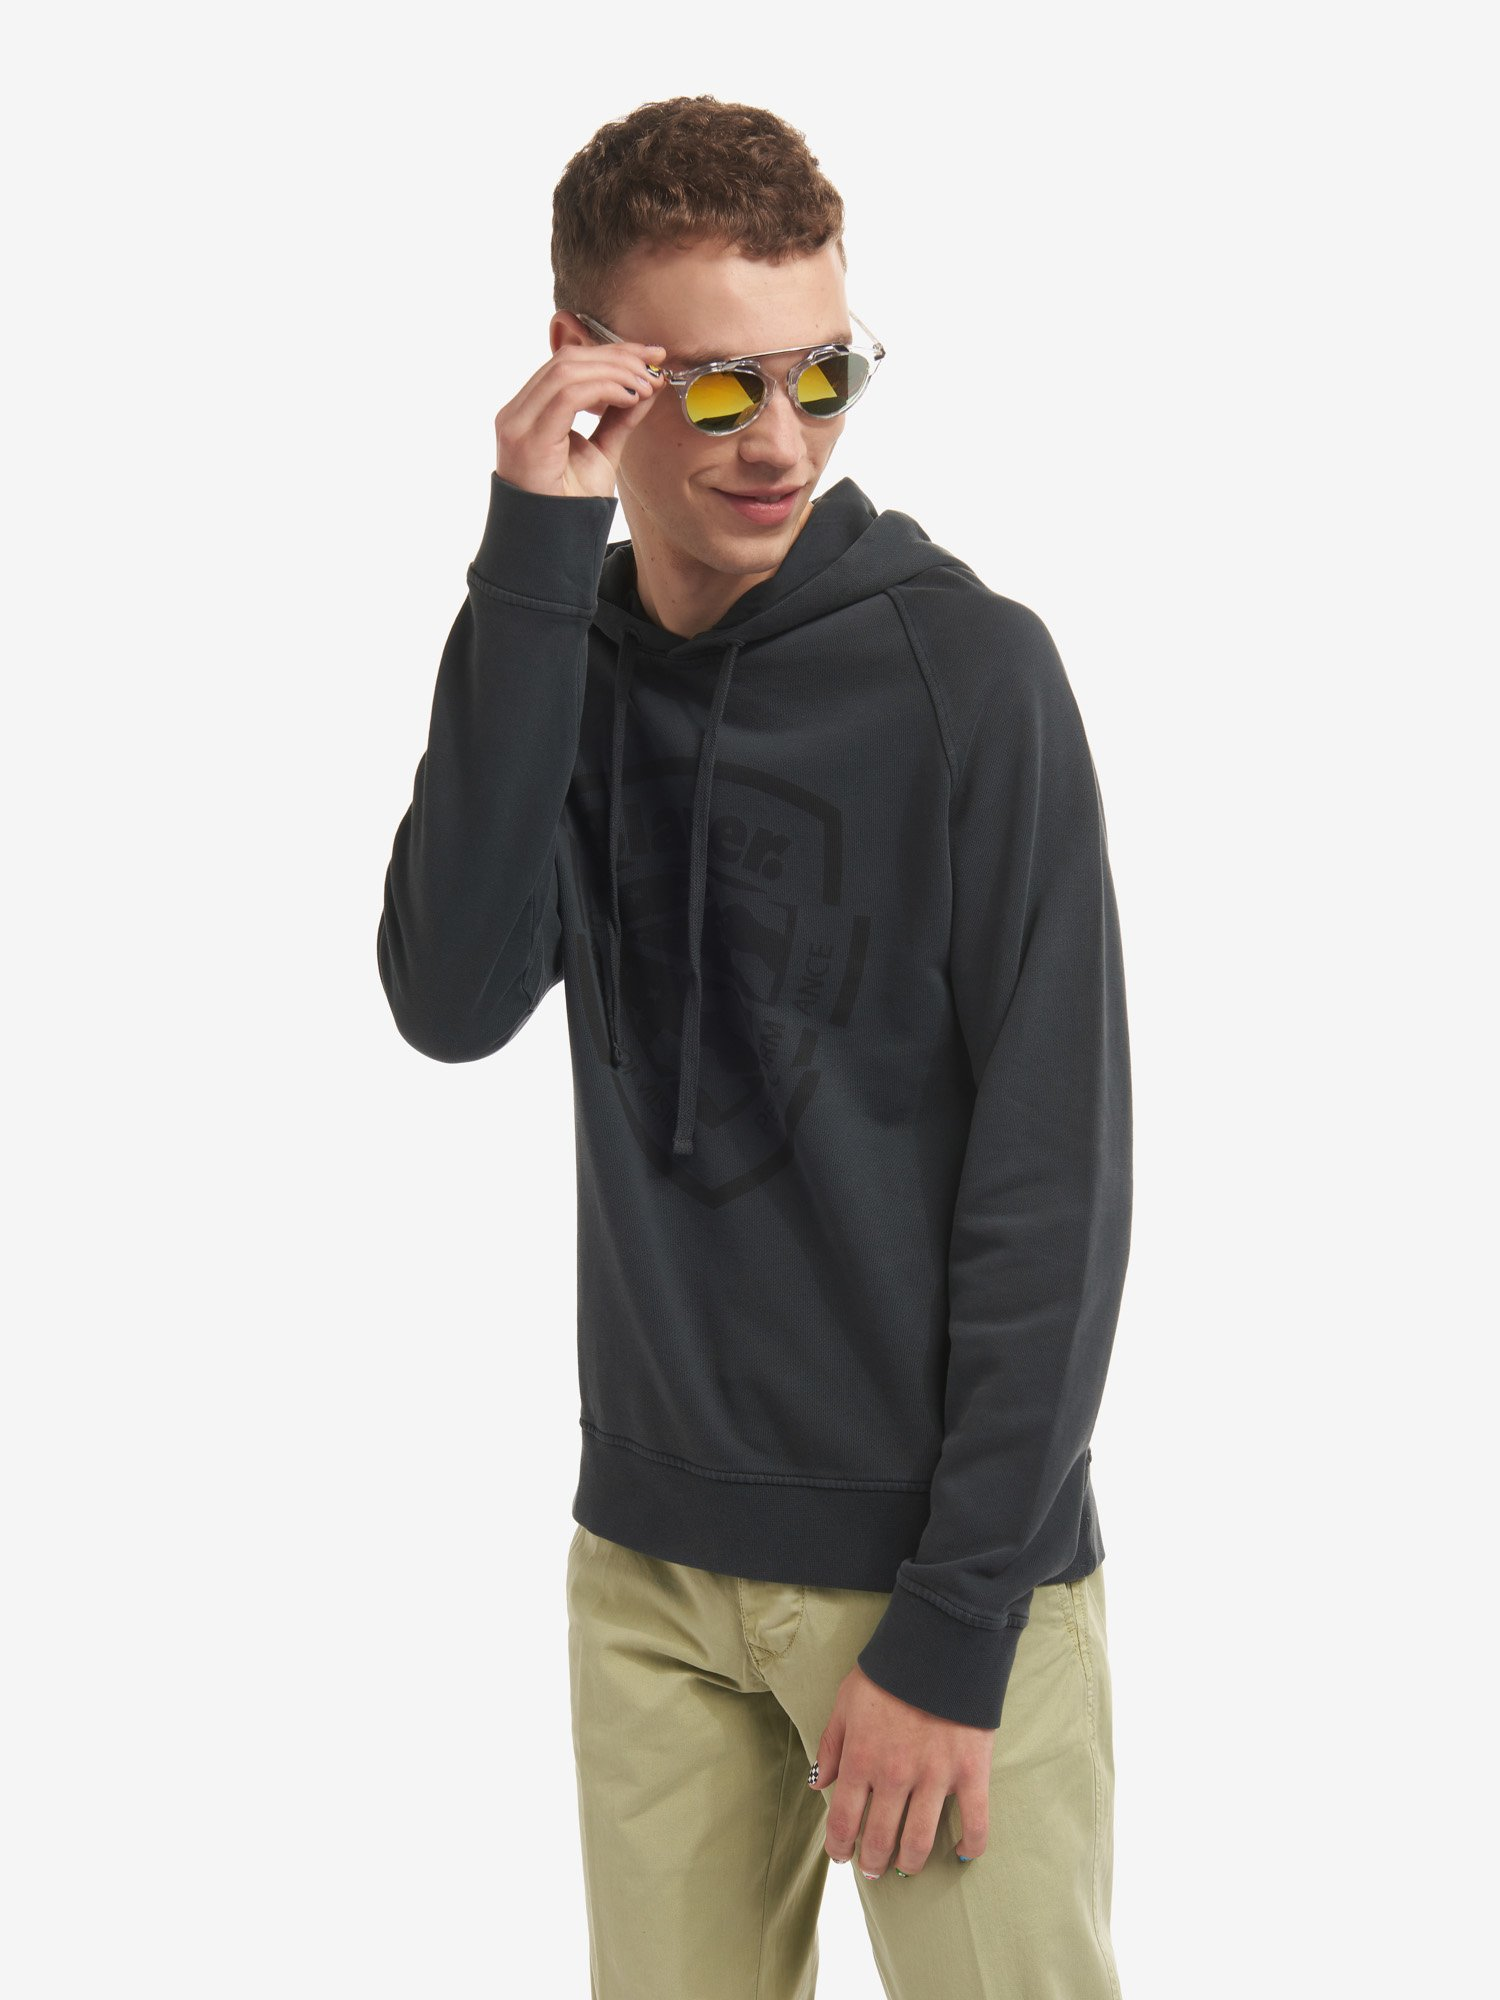 COTTON SWEATSHIRT WITH HOOD - Blauer